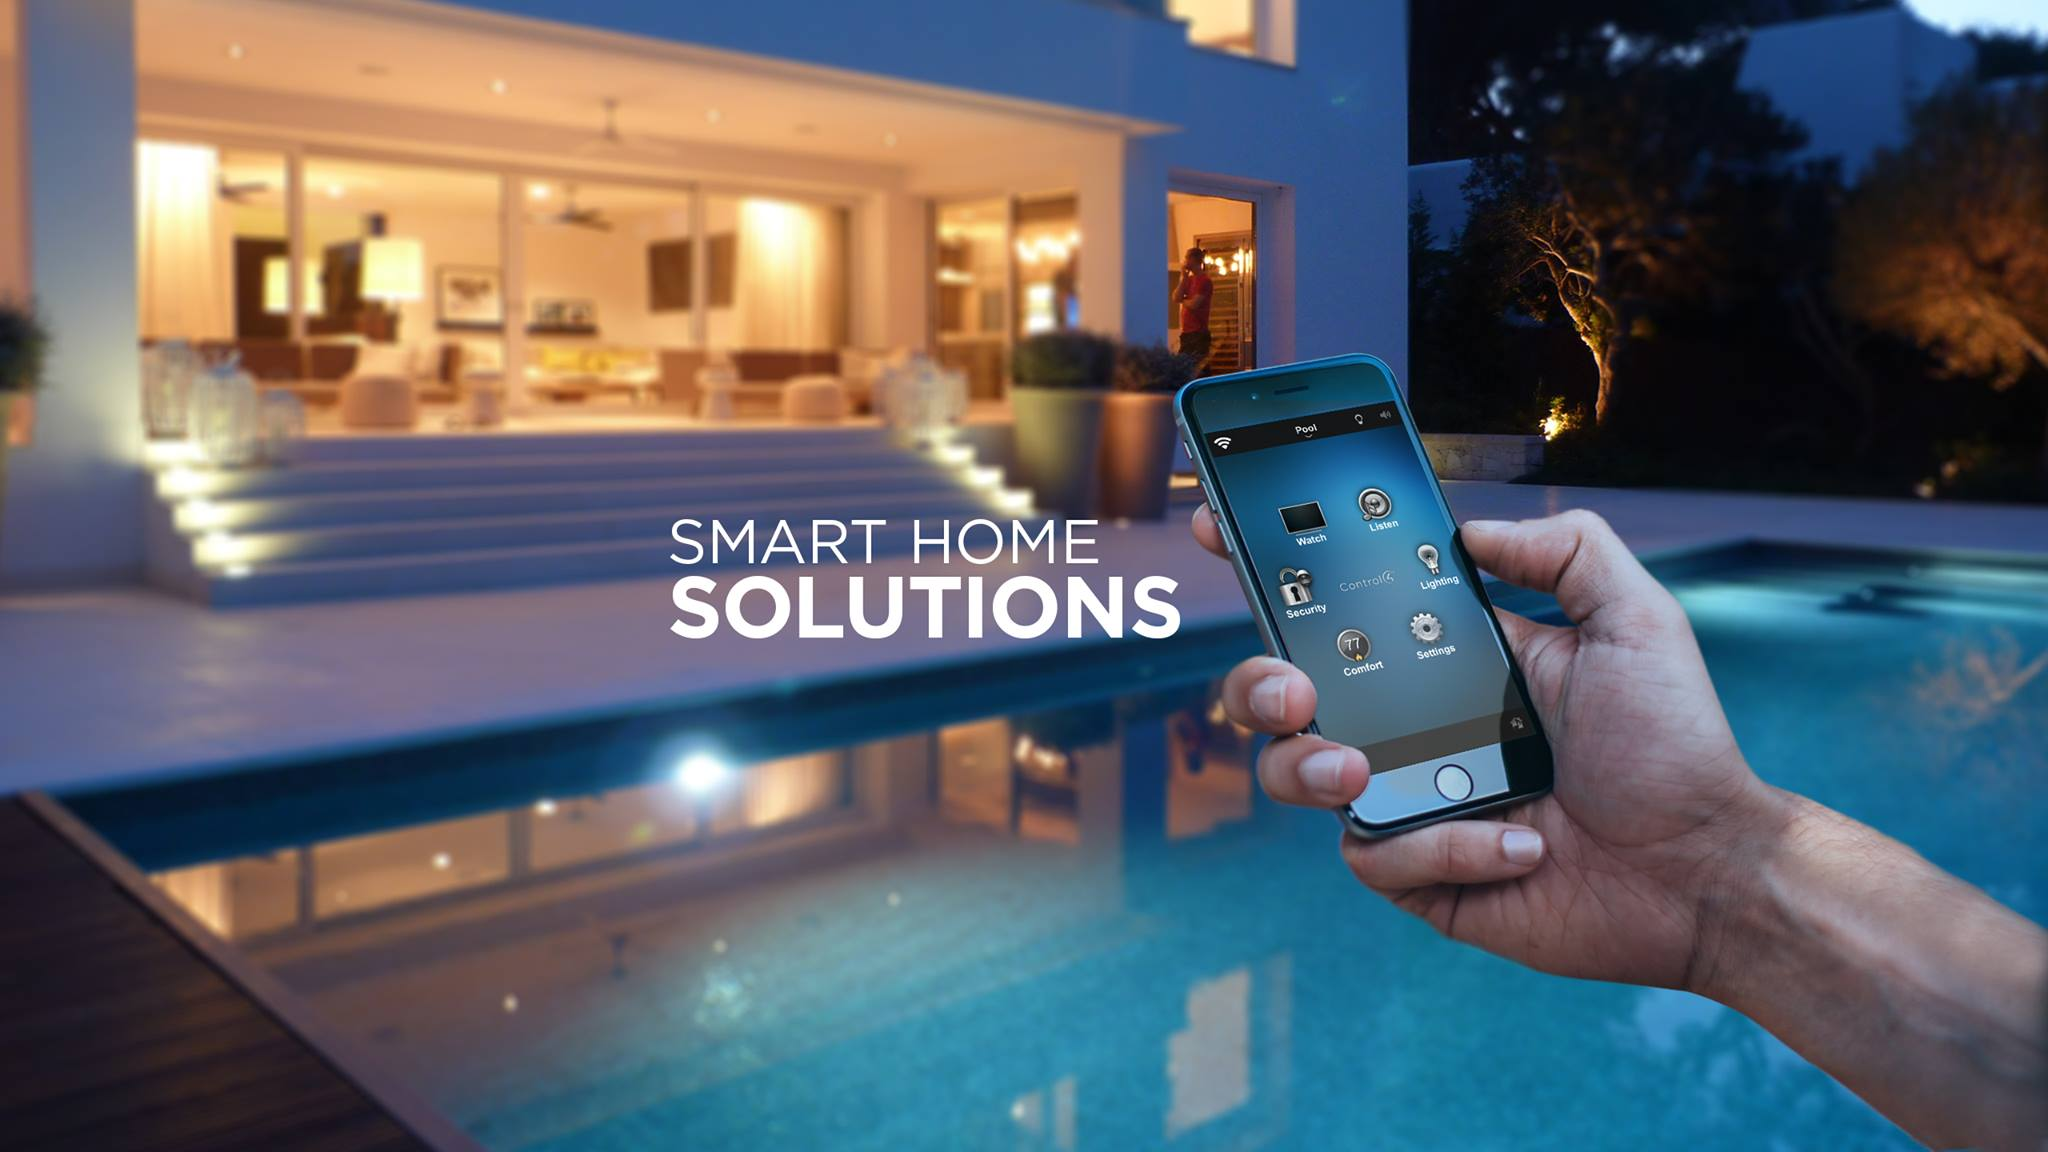 Control4 Home Automation Updates: The Latest and Greatest Innovations from Crestron, Lutron, and Control4